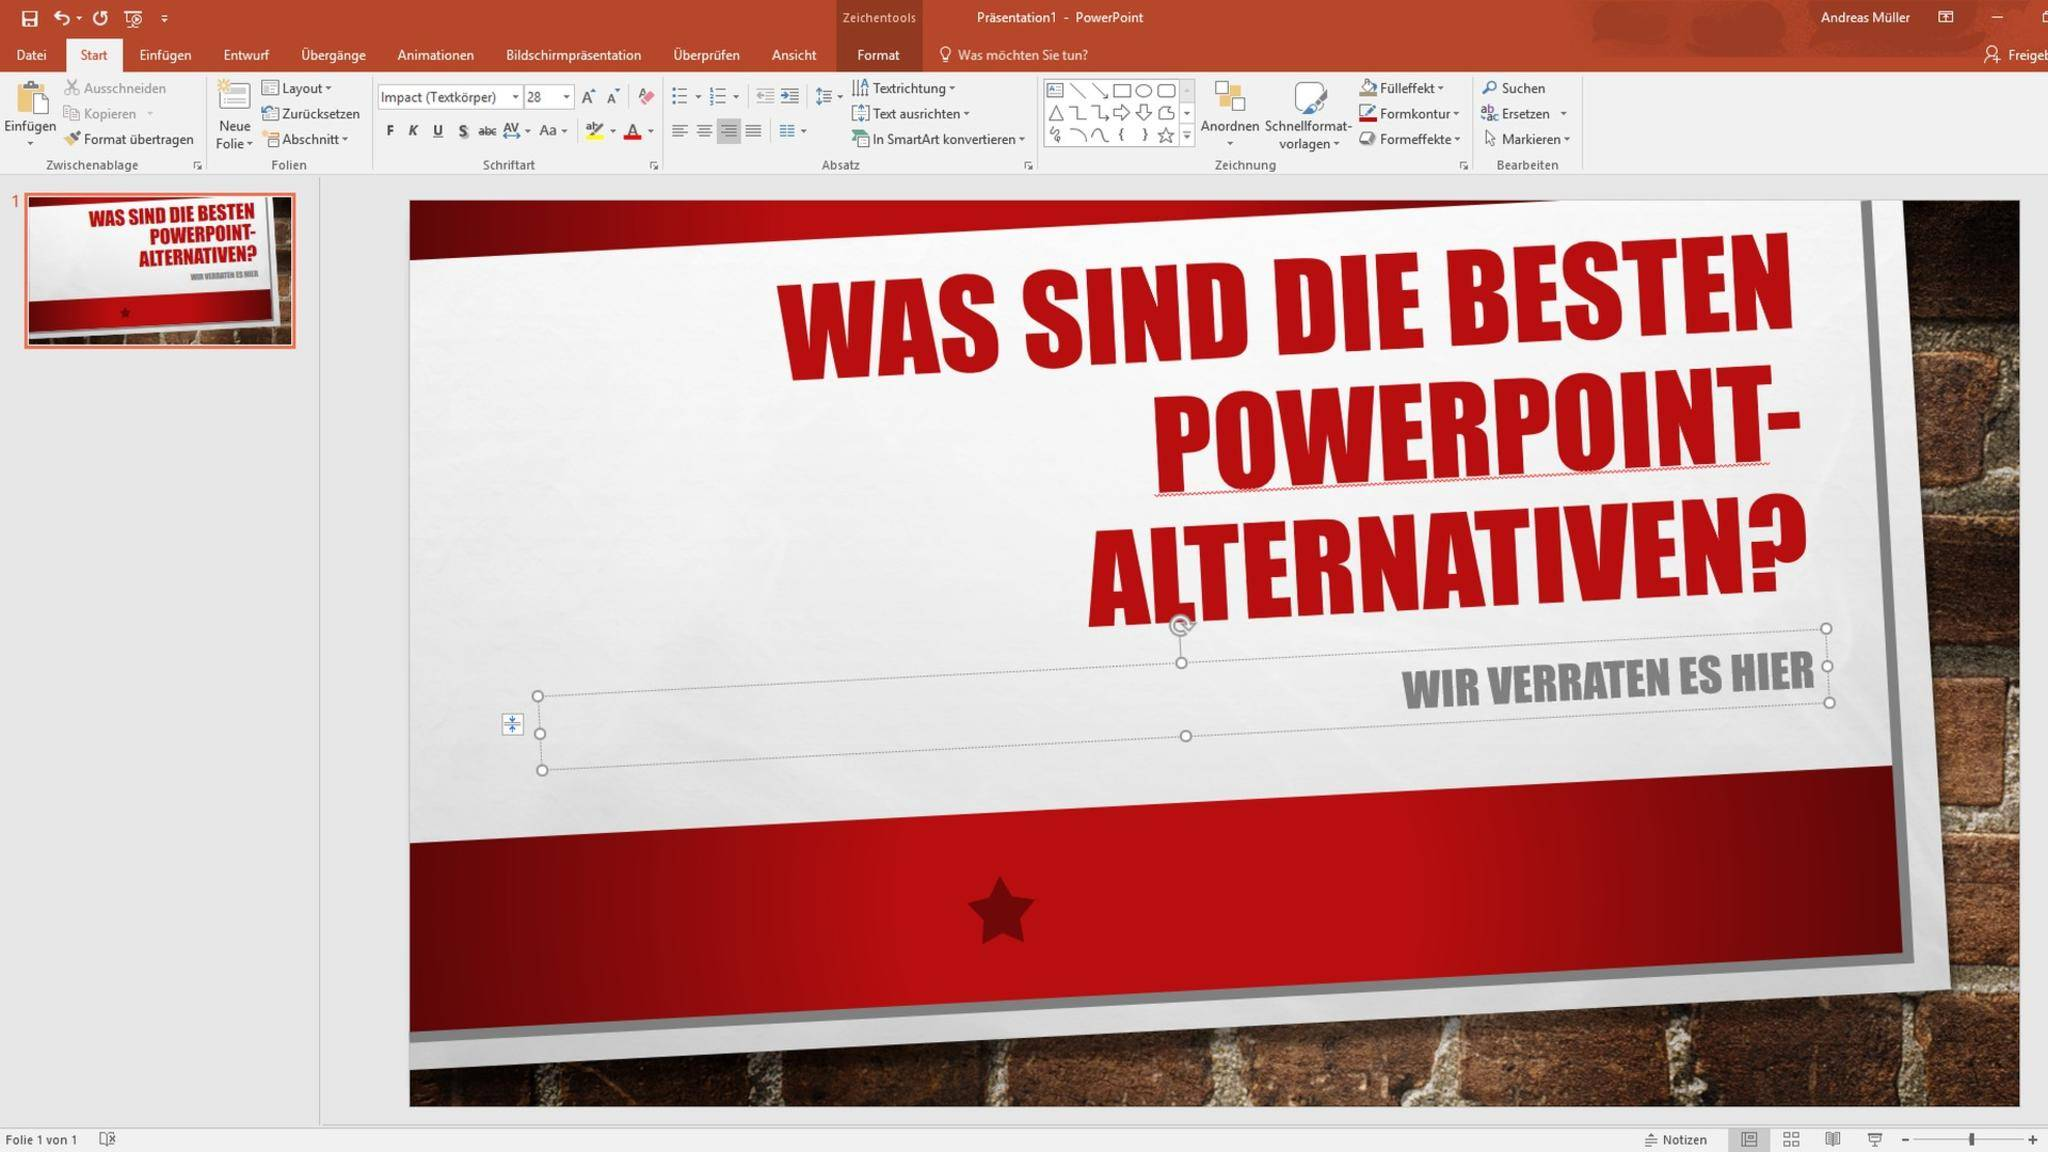 Impress aus dem Open Office-Paket ist eine gute PowerPoint-Alternative.